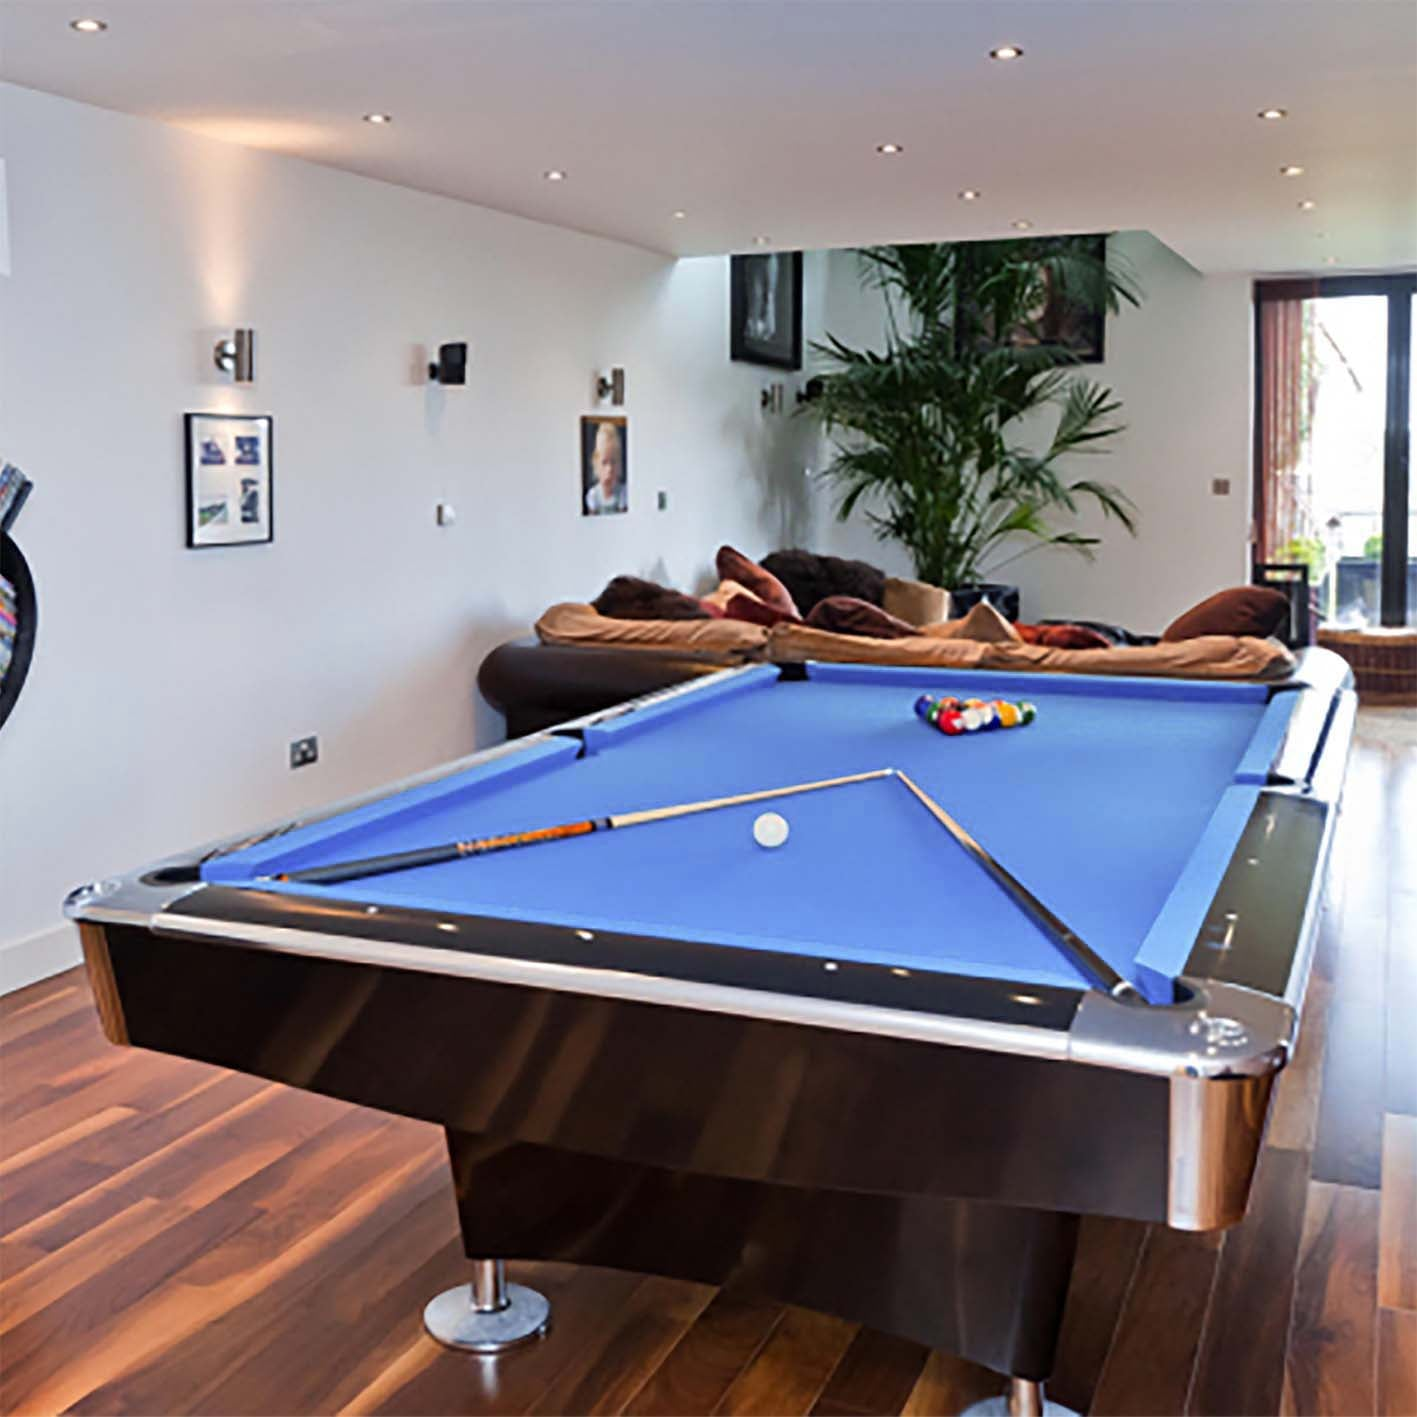 Buffalo Pro II 8' American Pool Table